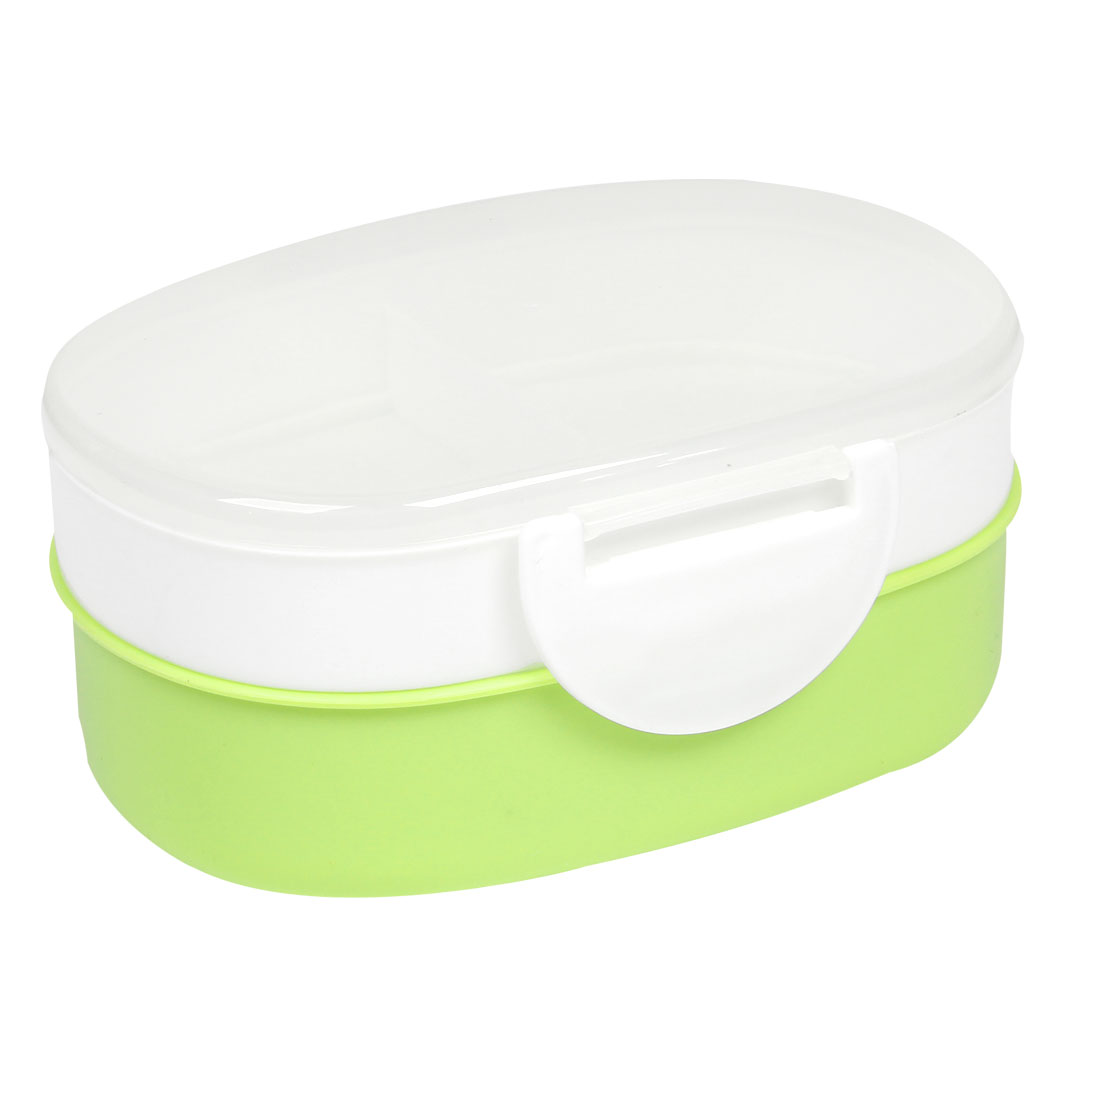 Light Green White Oval Plastic Lunch Box Food Storage Container w Spoon